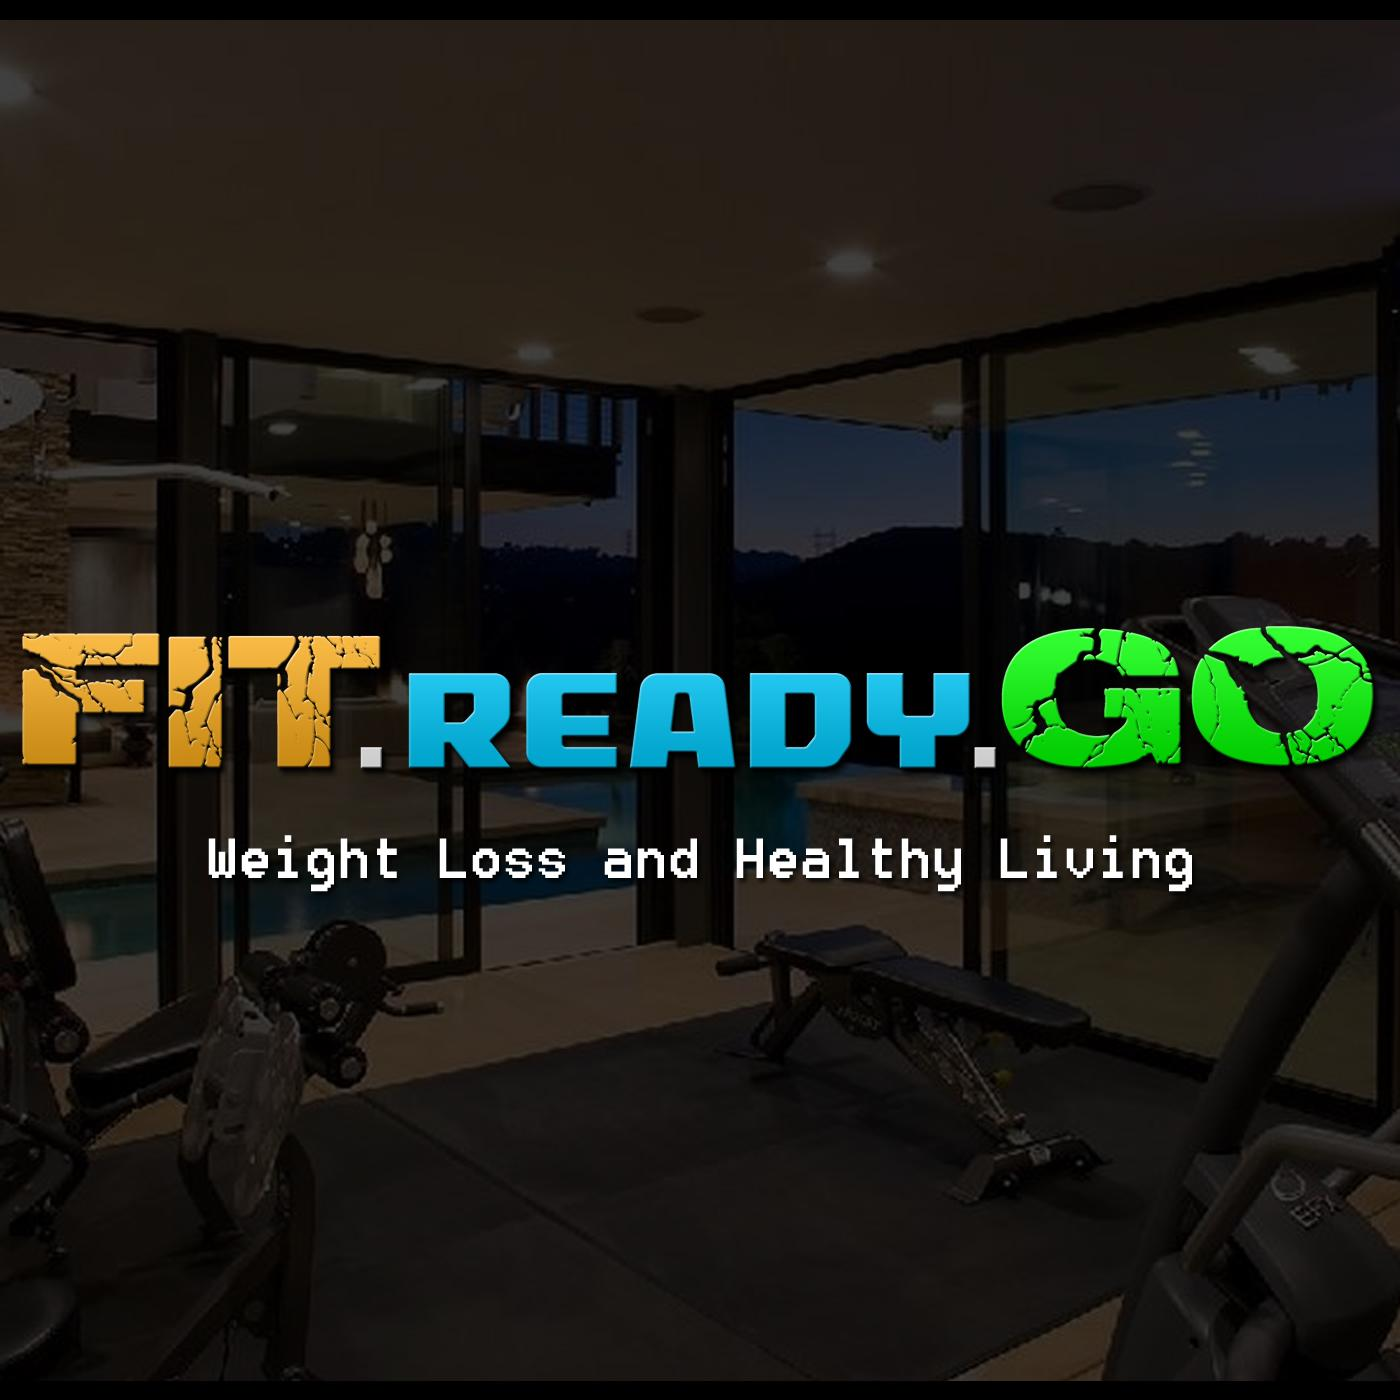 Fit.Ready.Go